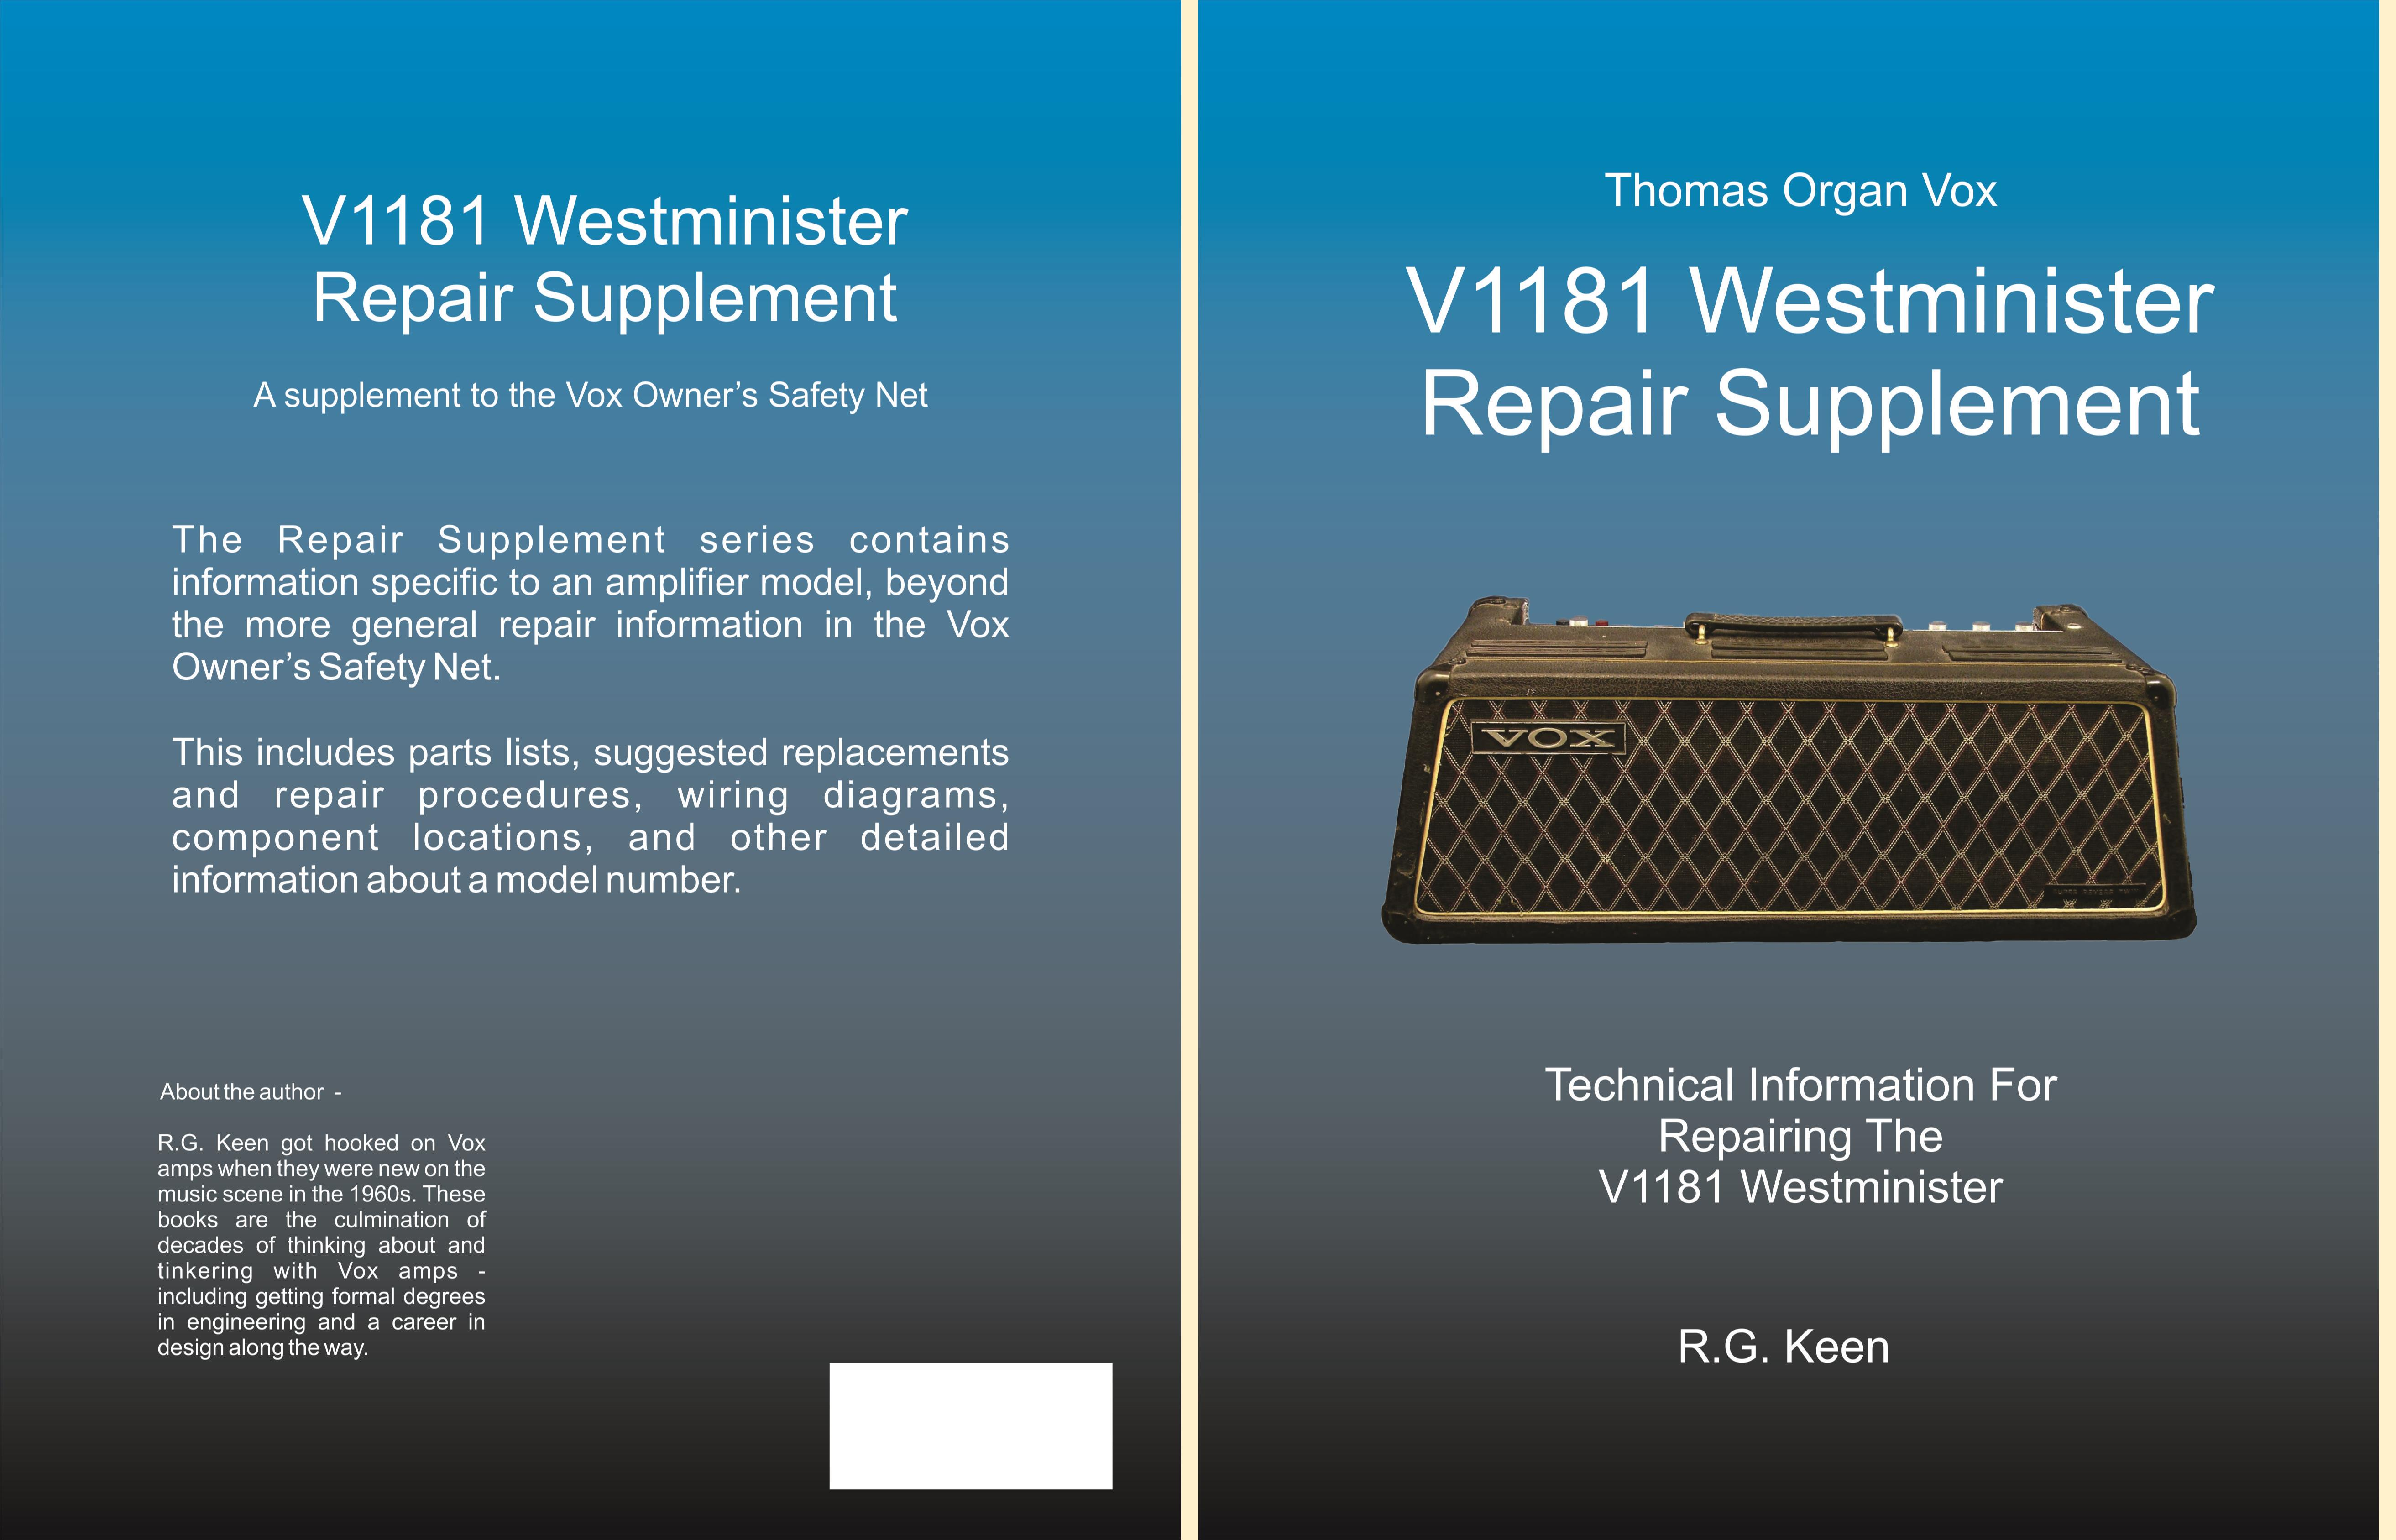 V1181 Westminister Repair Supplement cover image